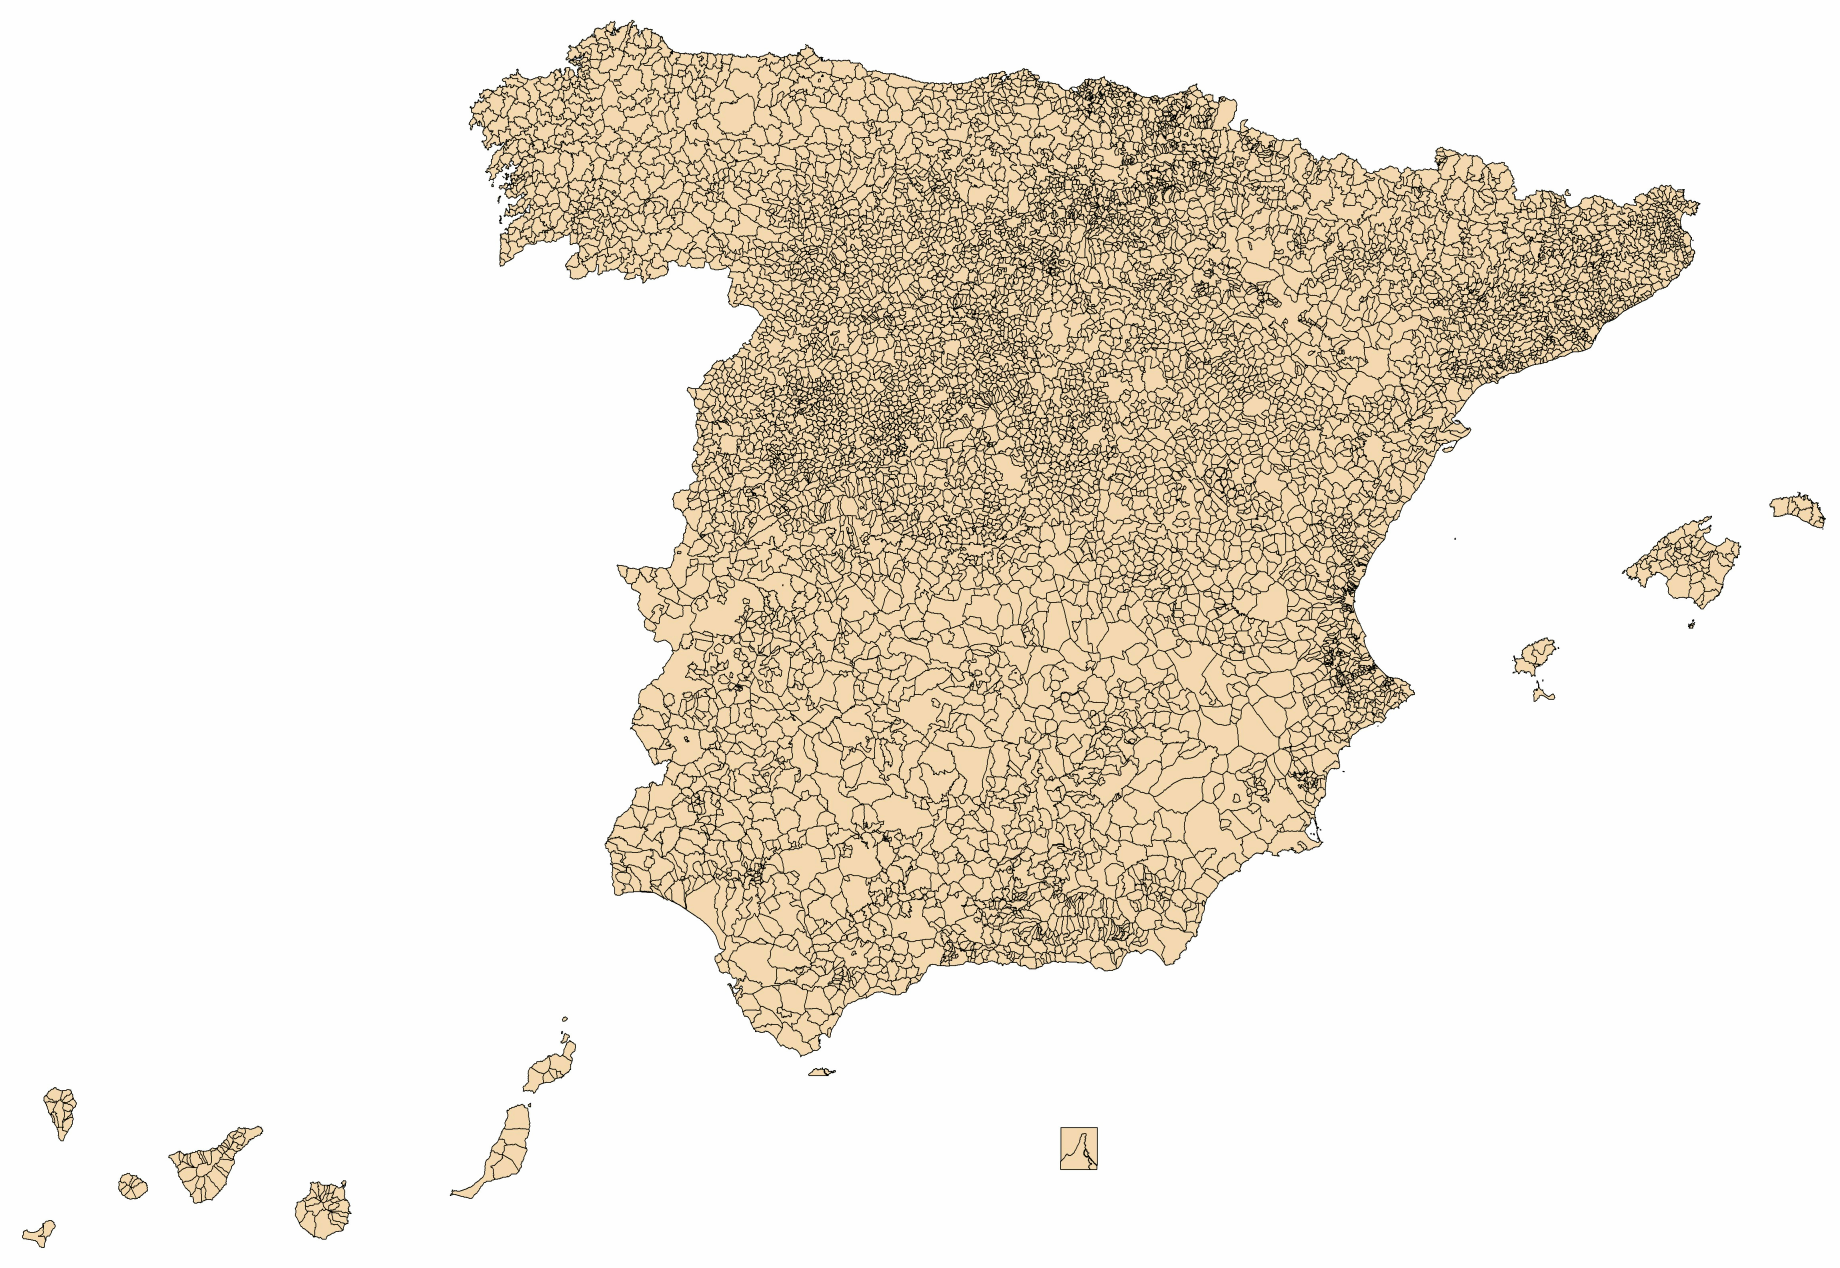 Spain municipalities blank map 2003